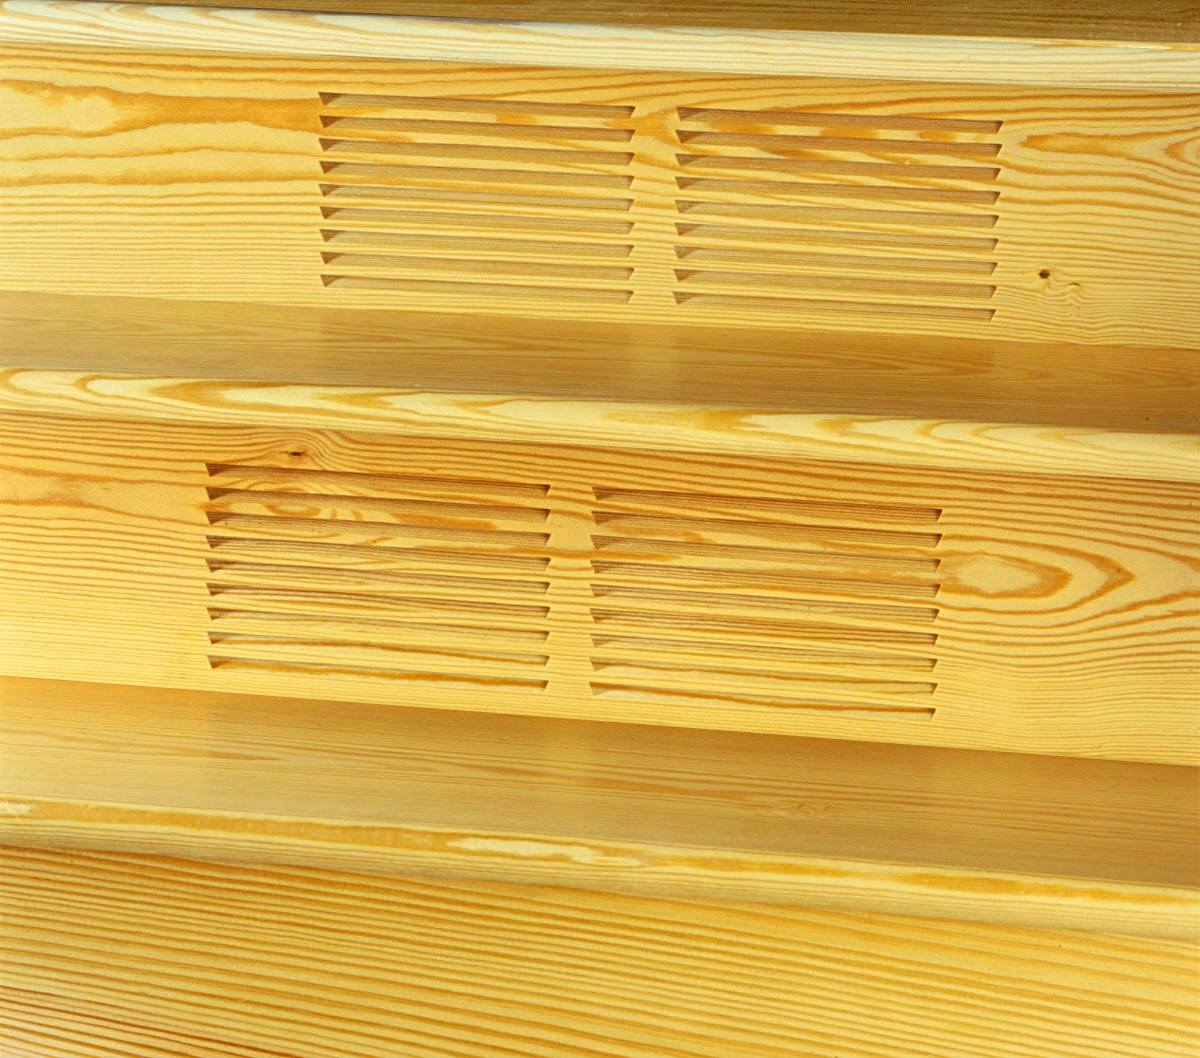 Risers » All American Wood Register Manufacturing Supply | Hardwood Steps And Risers | Gray Painted | Cherry Wood | Hardwood Floor | Timber | White